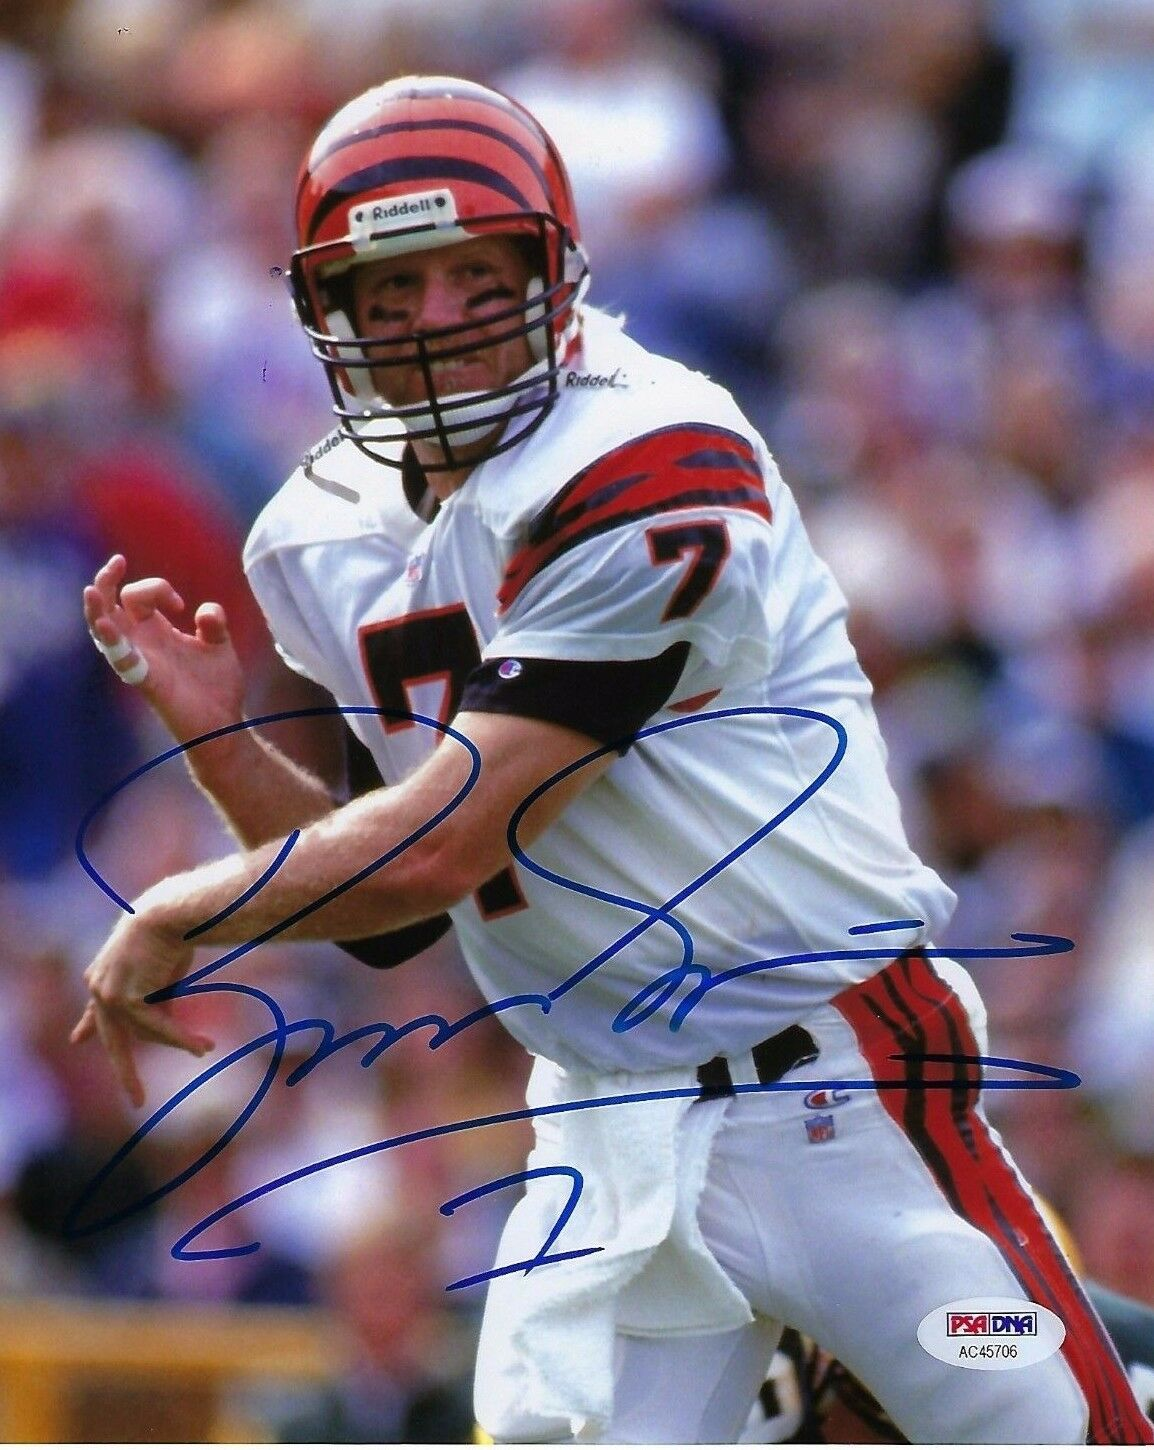 Boomer Esiason Signed Bengals Football 8x10 Photo PSA AC45706